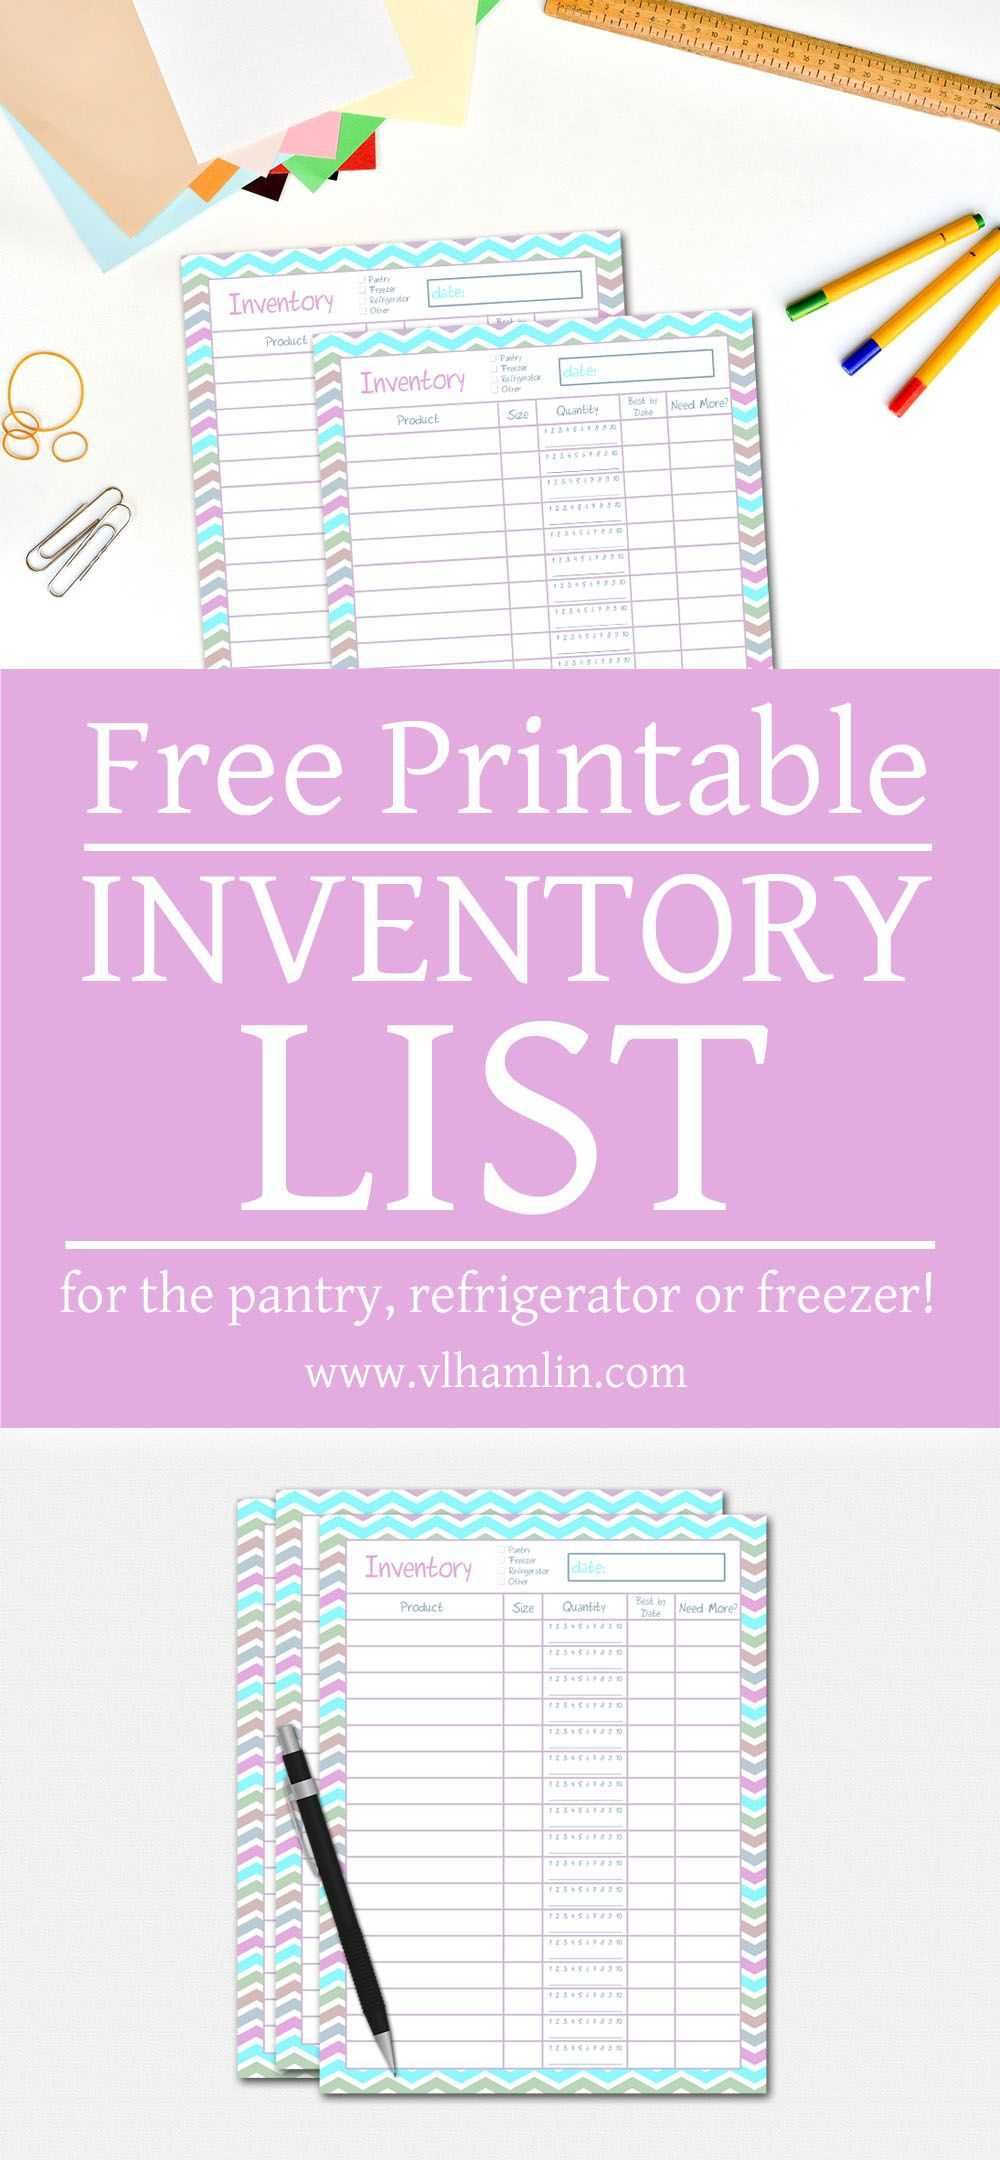 Free Printable Budget Binder Worksheets with Free Printable Inventory List for the Pantry Refrigerator or